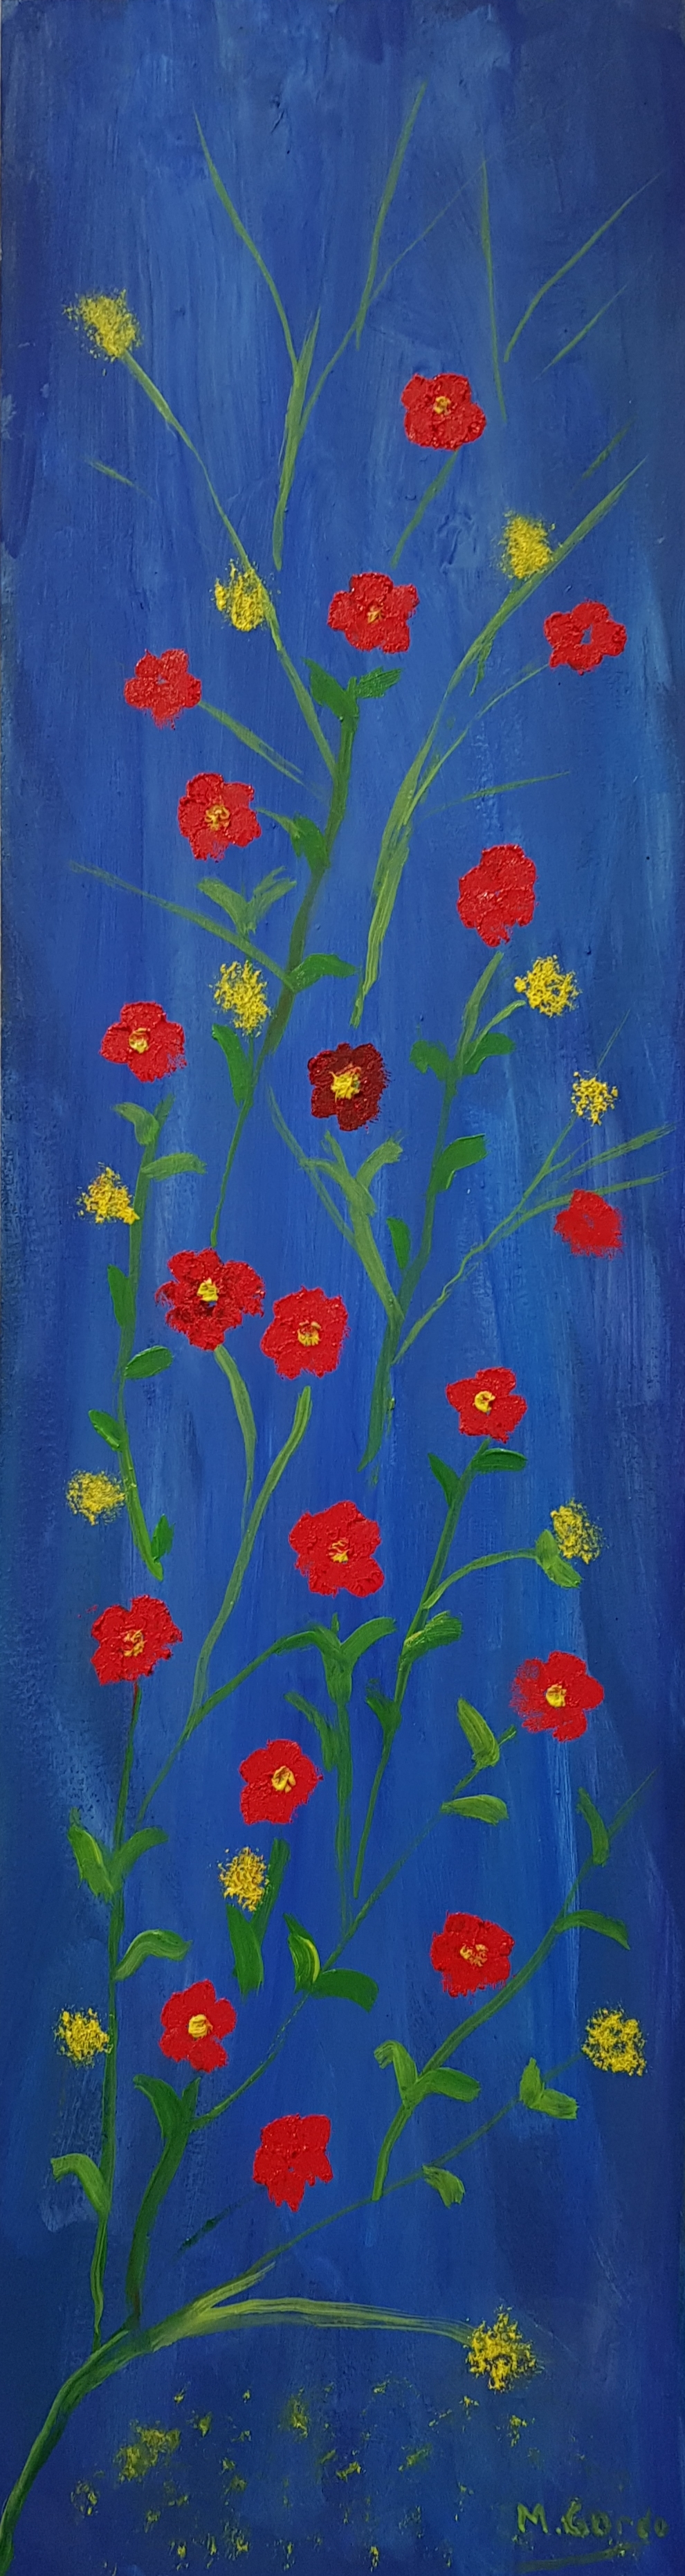 Flowers. 12 red